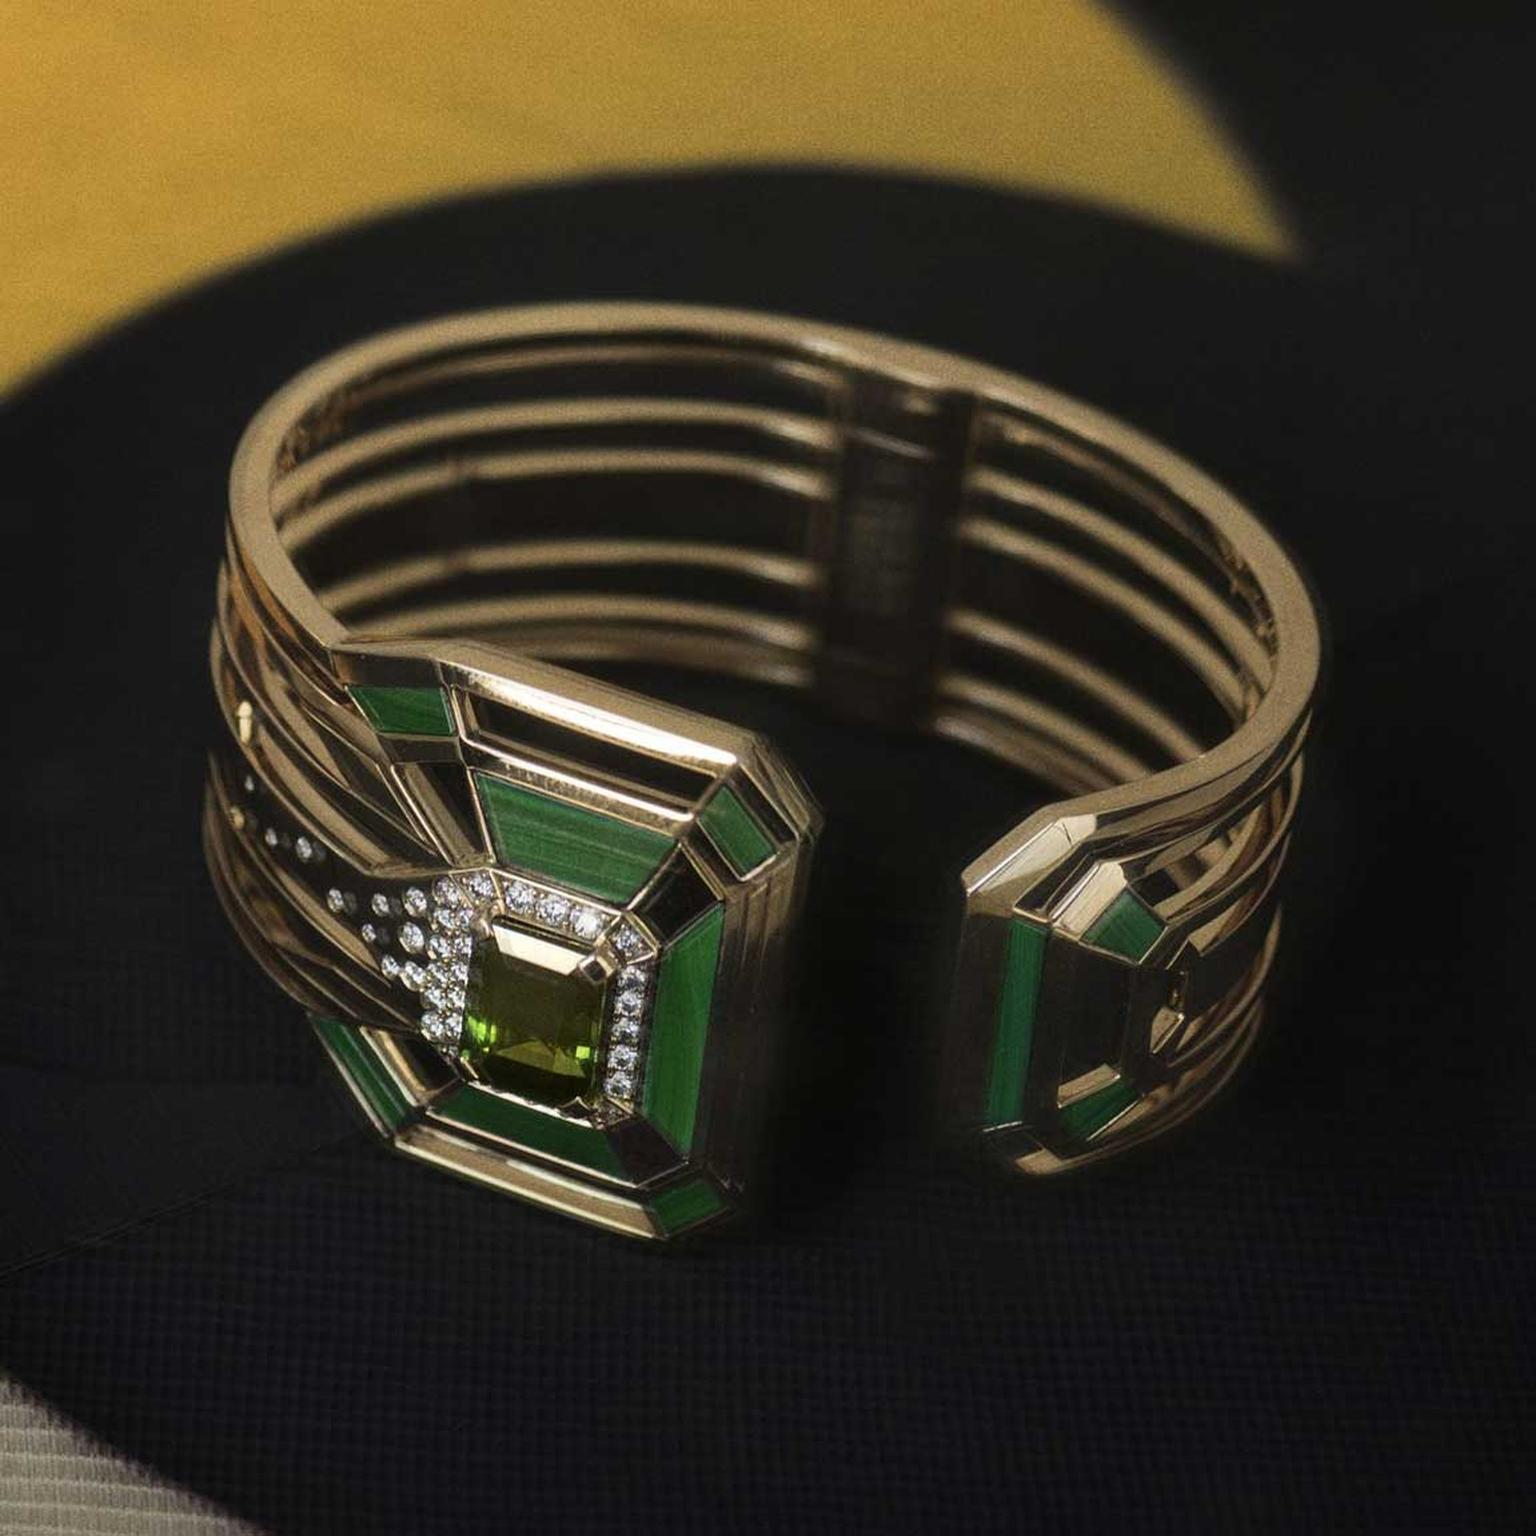 Chanel Gallery My Green tourmaline cuff